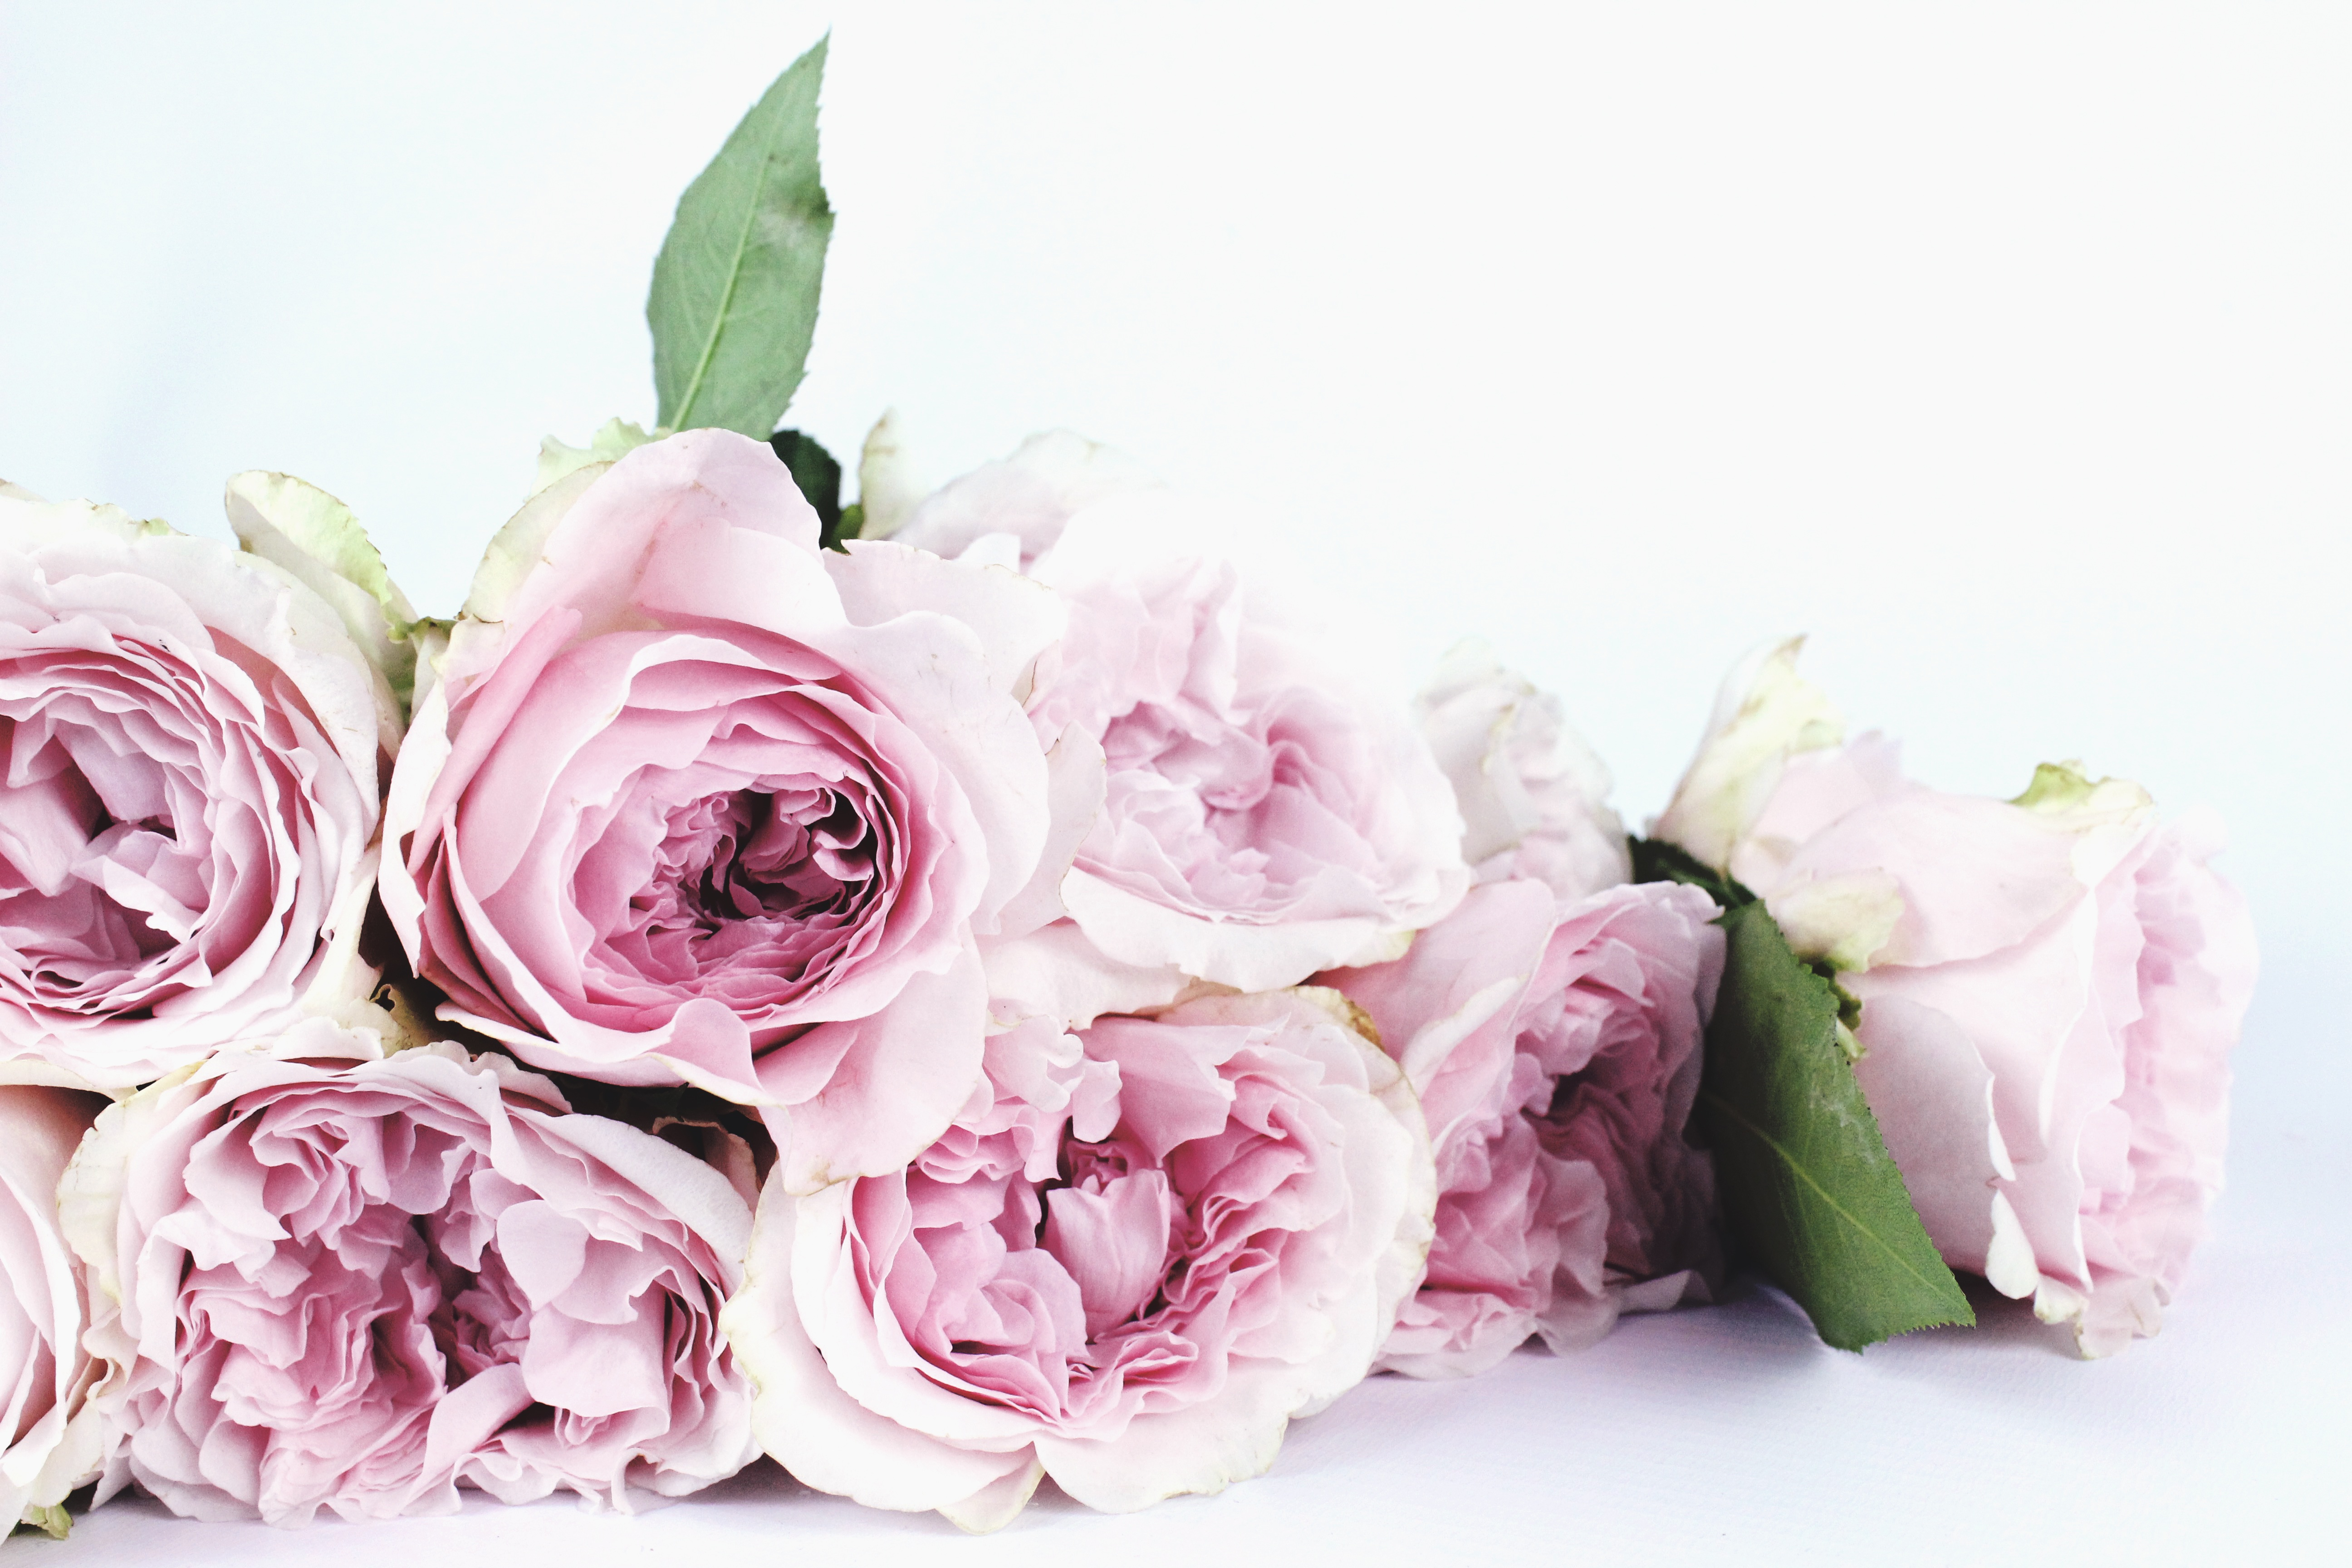 Pink and White Roses · Free Stock Photo